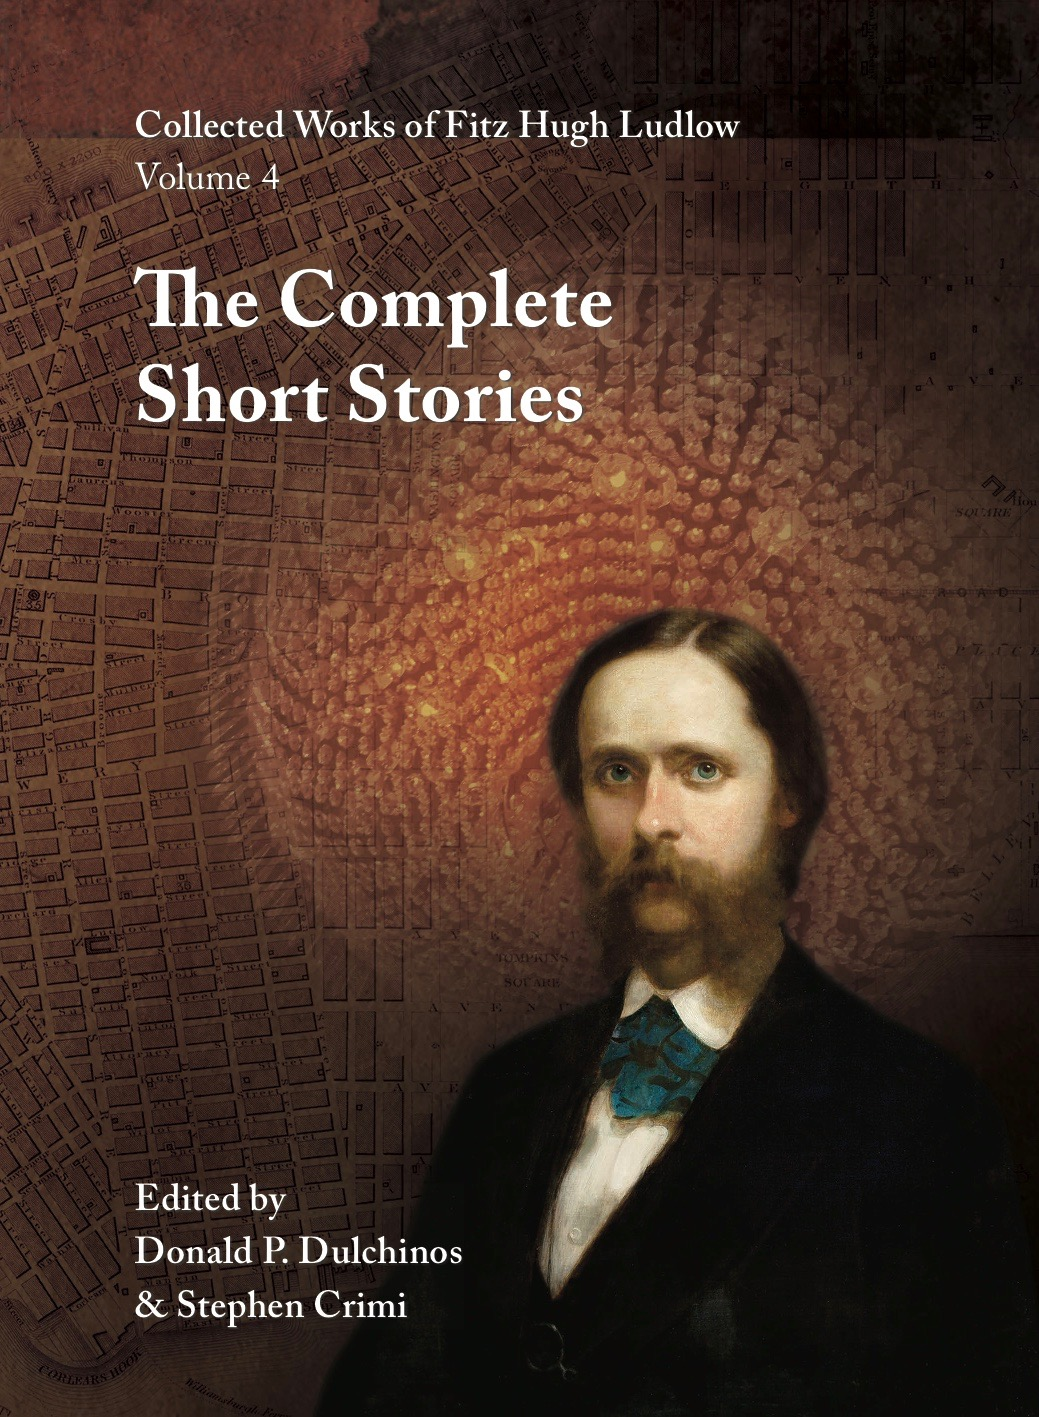 Collected Works of Fitz Hugh Ludlow, Volume 4: The Complete Short Stories